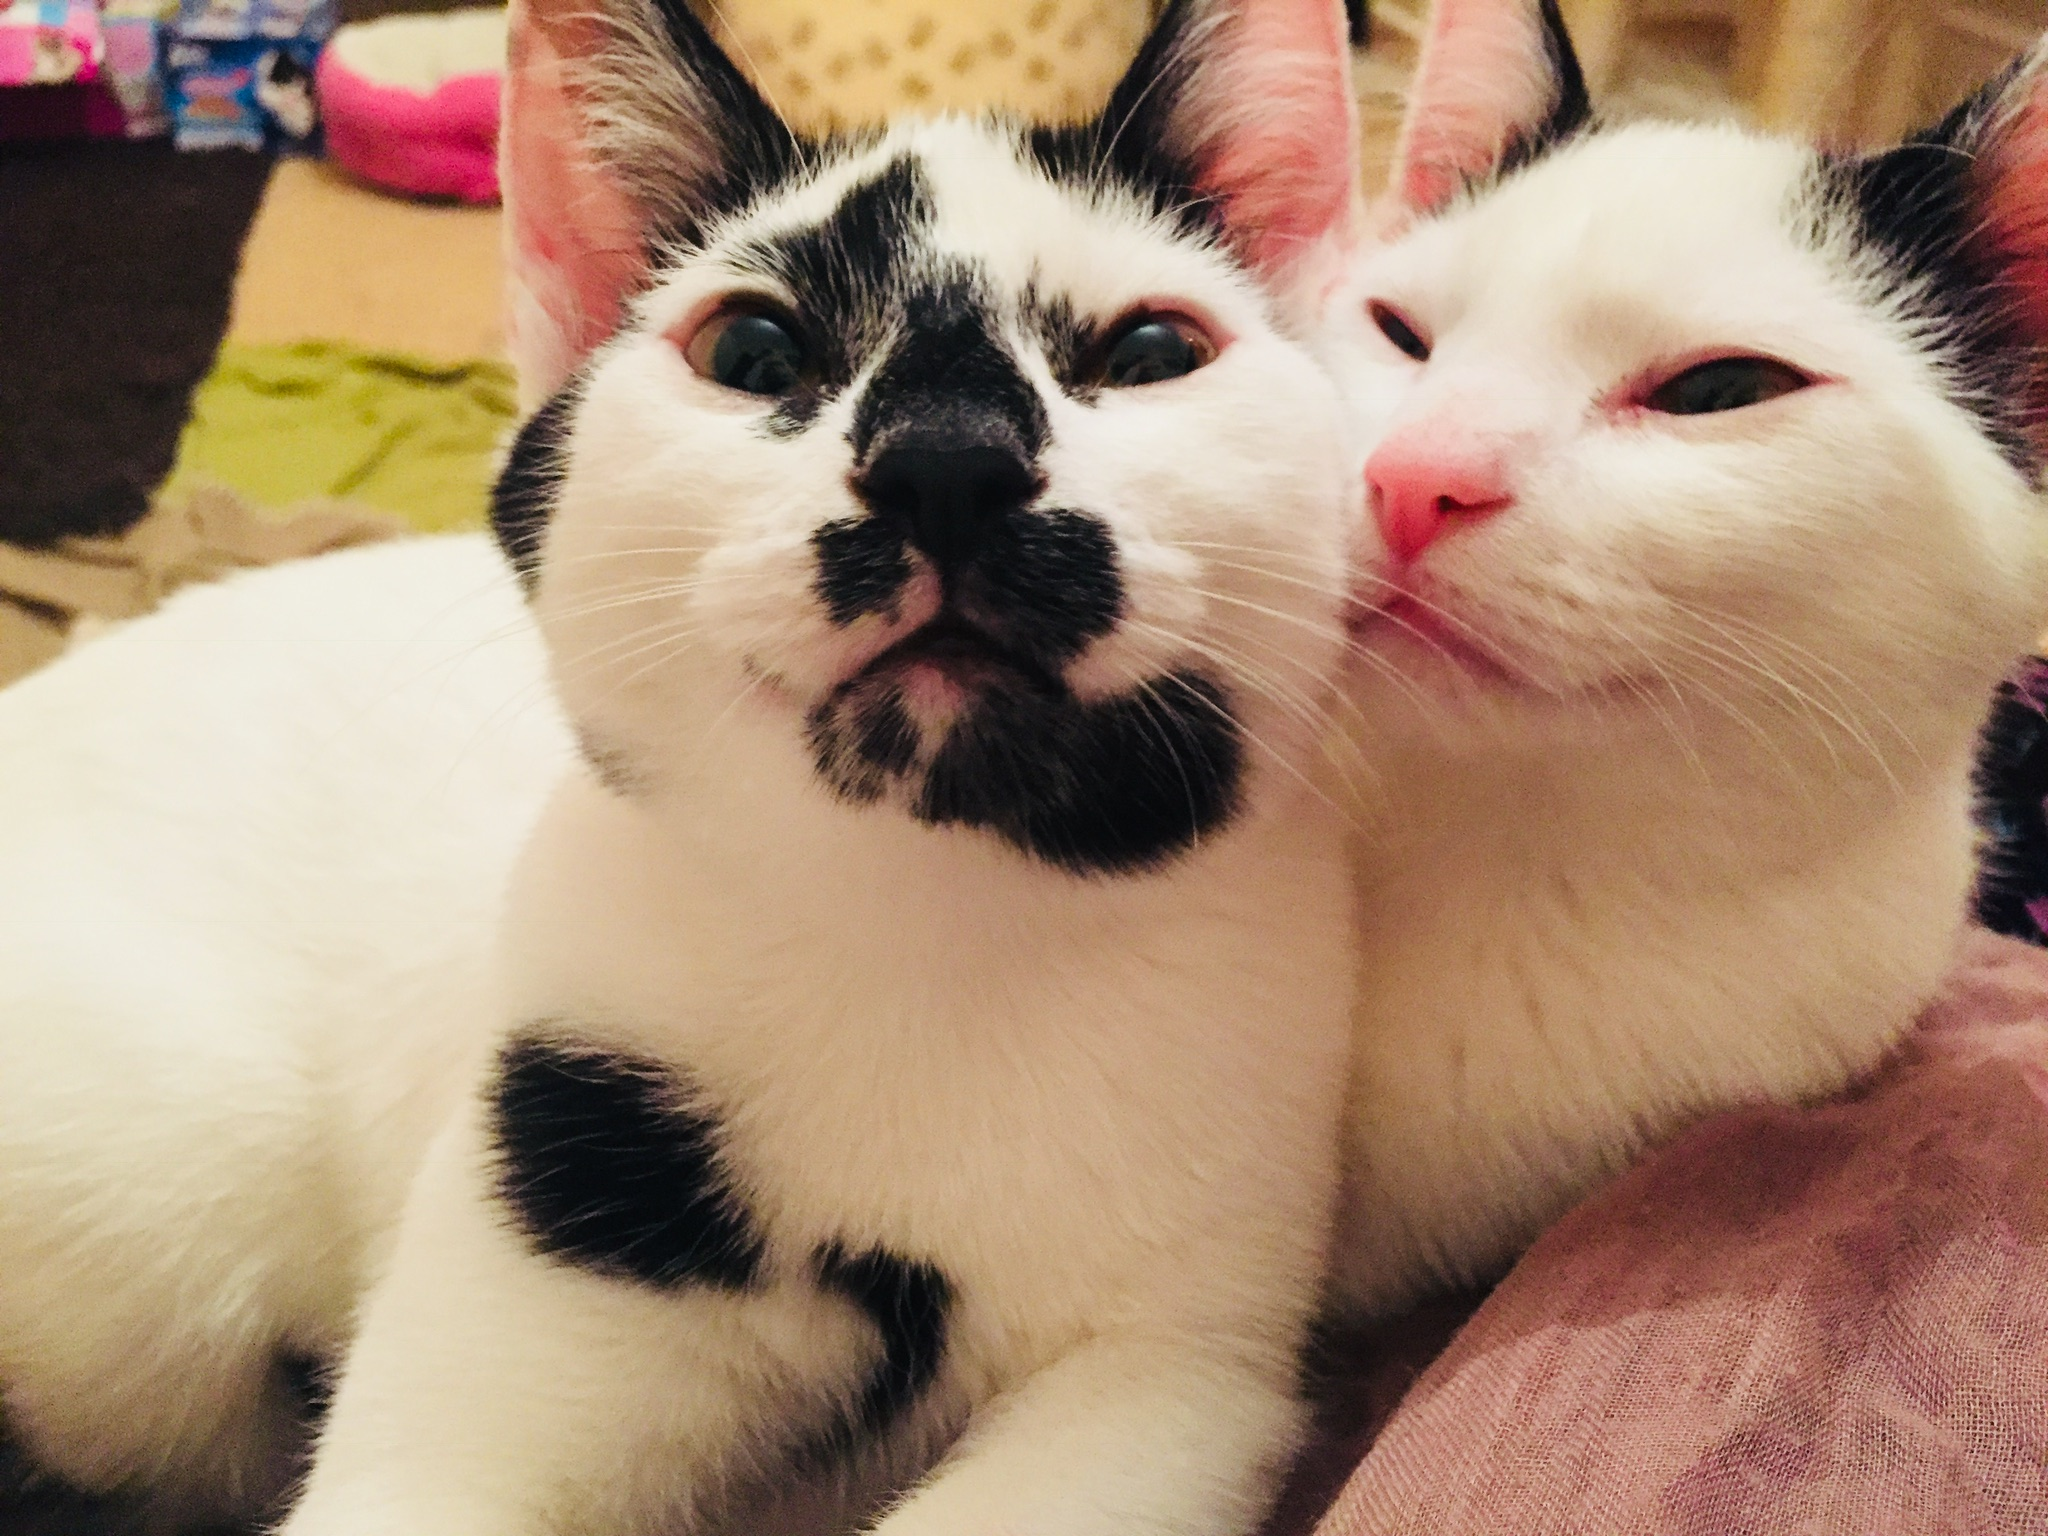 Patch & Snowflake - Adopted Dec 17